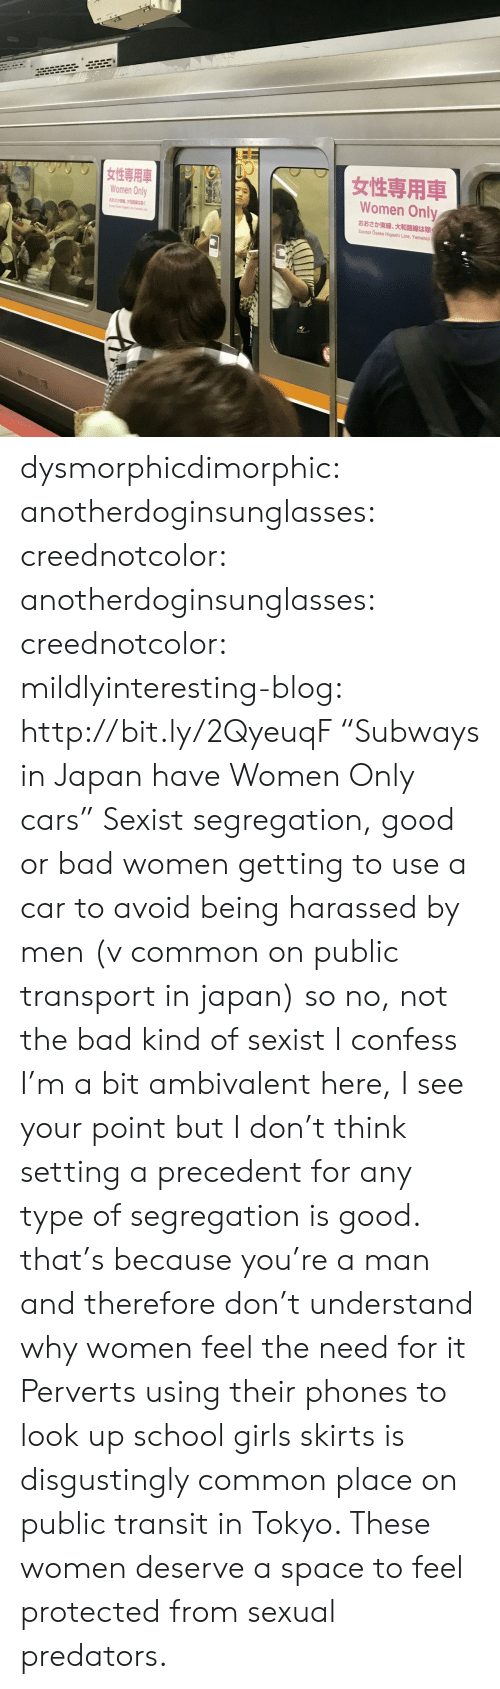 "sexist: Women Only  Women Only  882  K  Except Osaka Higashi Line, Yamatoji dysmorphicdimorphic: anotherdoginsunglasses:  creednotcolor:   anotherdoginsunglasses:   creednotcolor:   mildlyinteresting-blog:  http://bit.ly/2QyeuqF ""Subways in Japan have Women Only cars""  Sexist segregation, good or bad   women getting to use a car to avoid being harassed by men (v common on public transport in japan) so no, not the bad kind of sexist    I confess I'm a bit ambivalent here, I see your point but I don't think setting a precedent for any type of segregation is good.   that's because you're a man and therefore don't understand why women feel the need for it   Perverts using their phones to look up school girls skirts is disgustingly common place on public transit in Tokyo. These women deserve a space to feel protected from sexual predators."